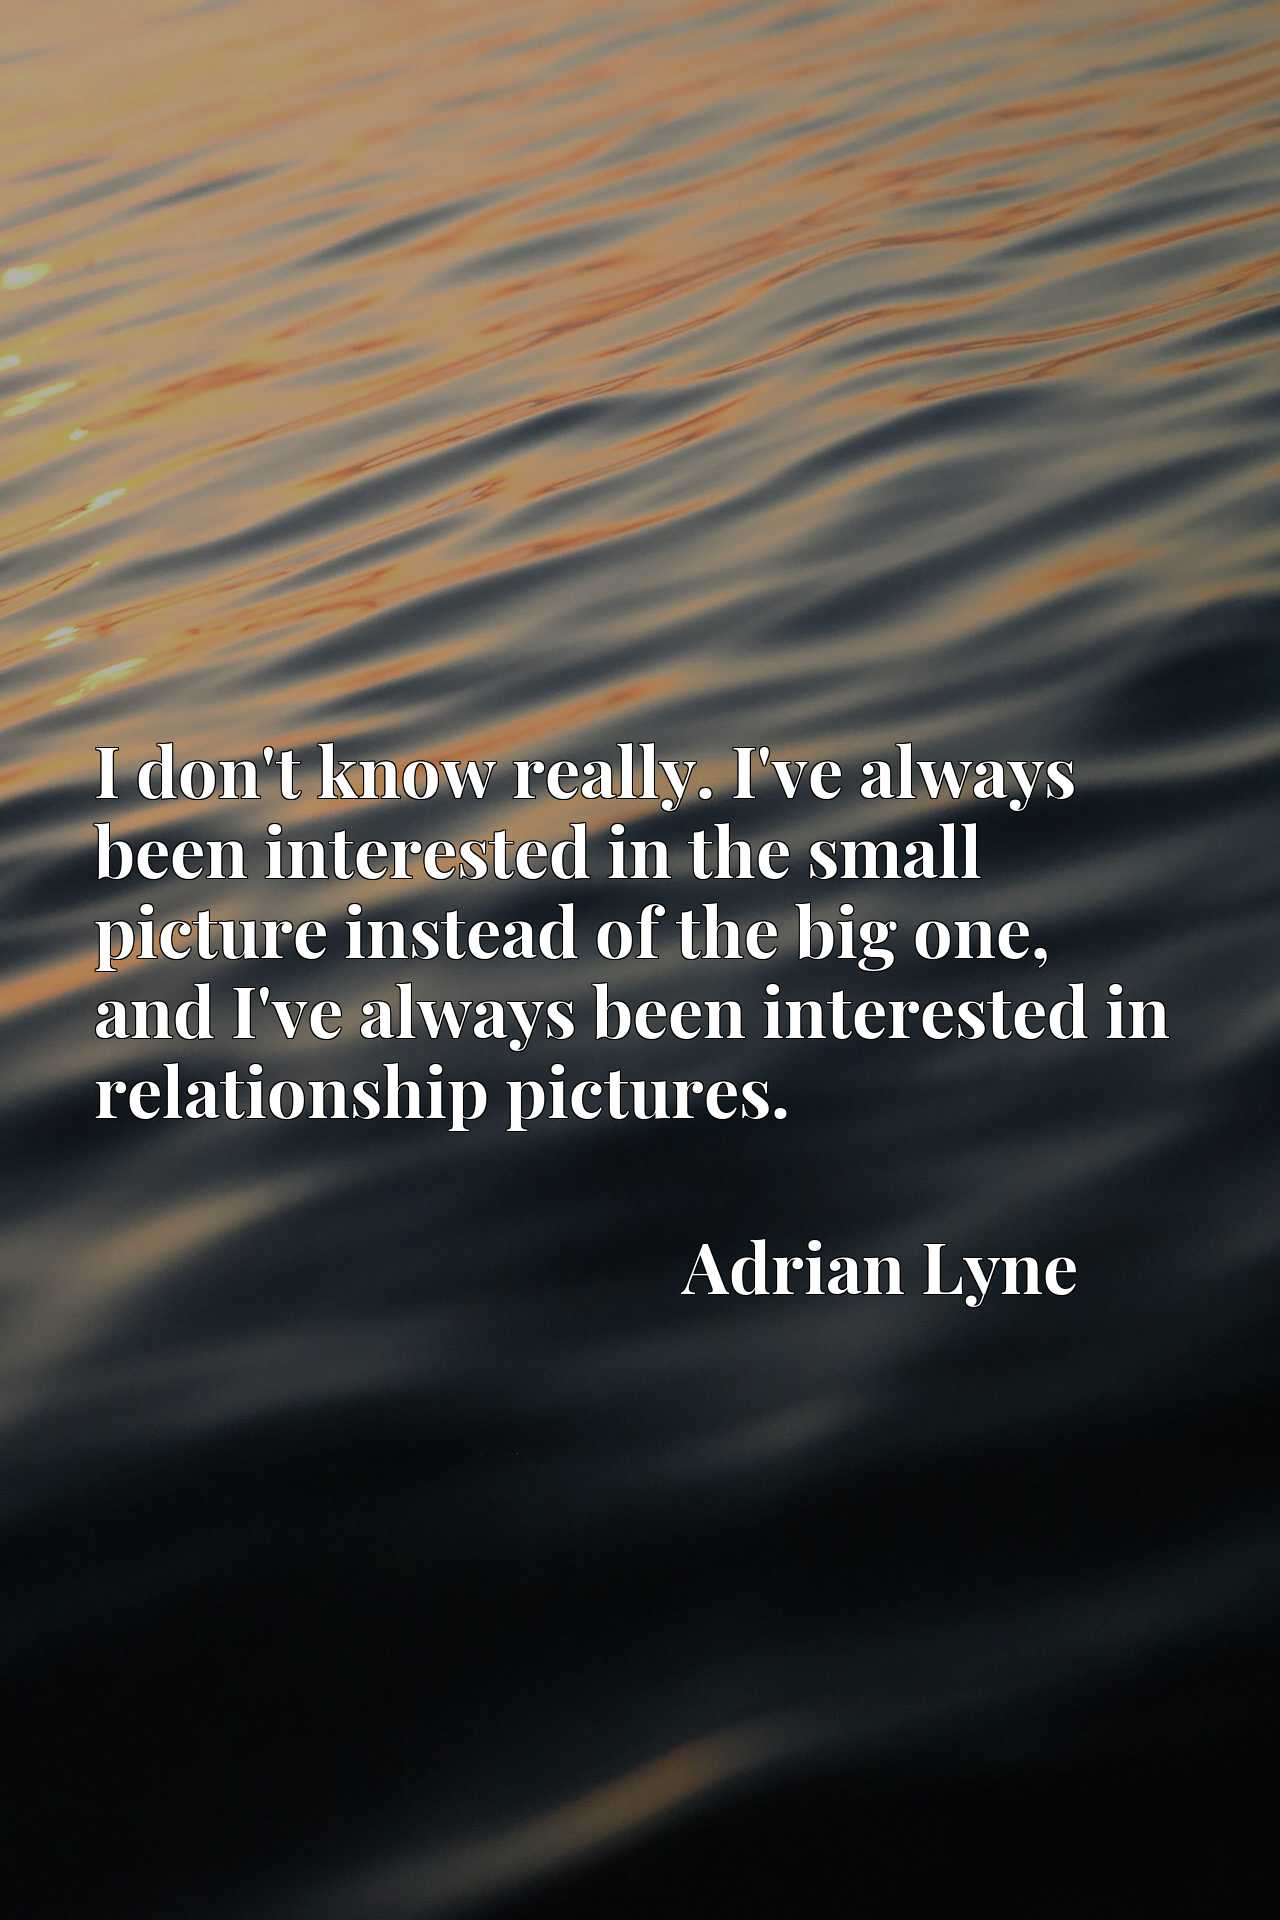 I don't know really. I've always been interested in the small picture instead of the big one, and I've always been interested in relationship pictures.